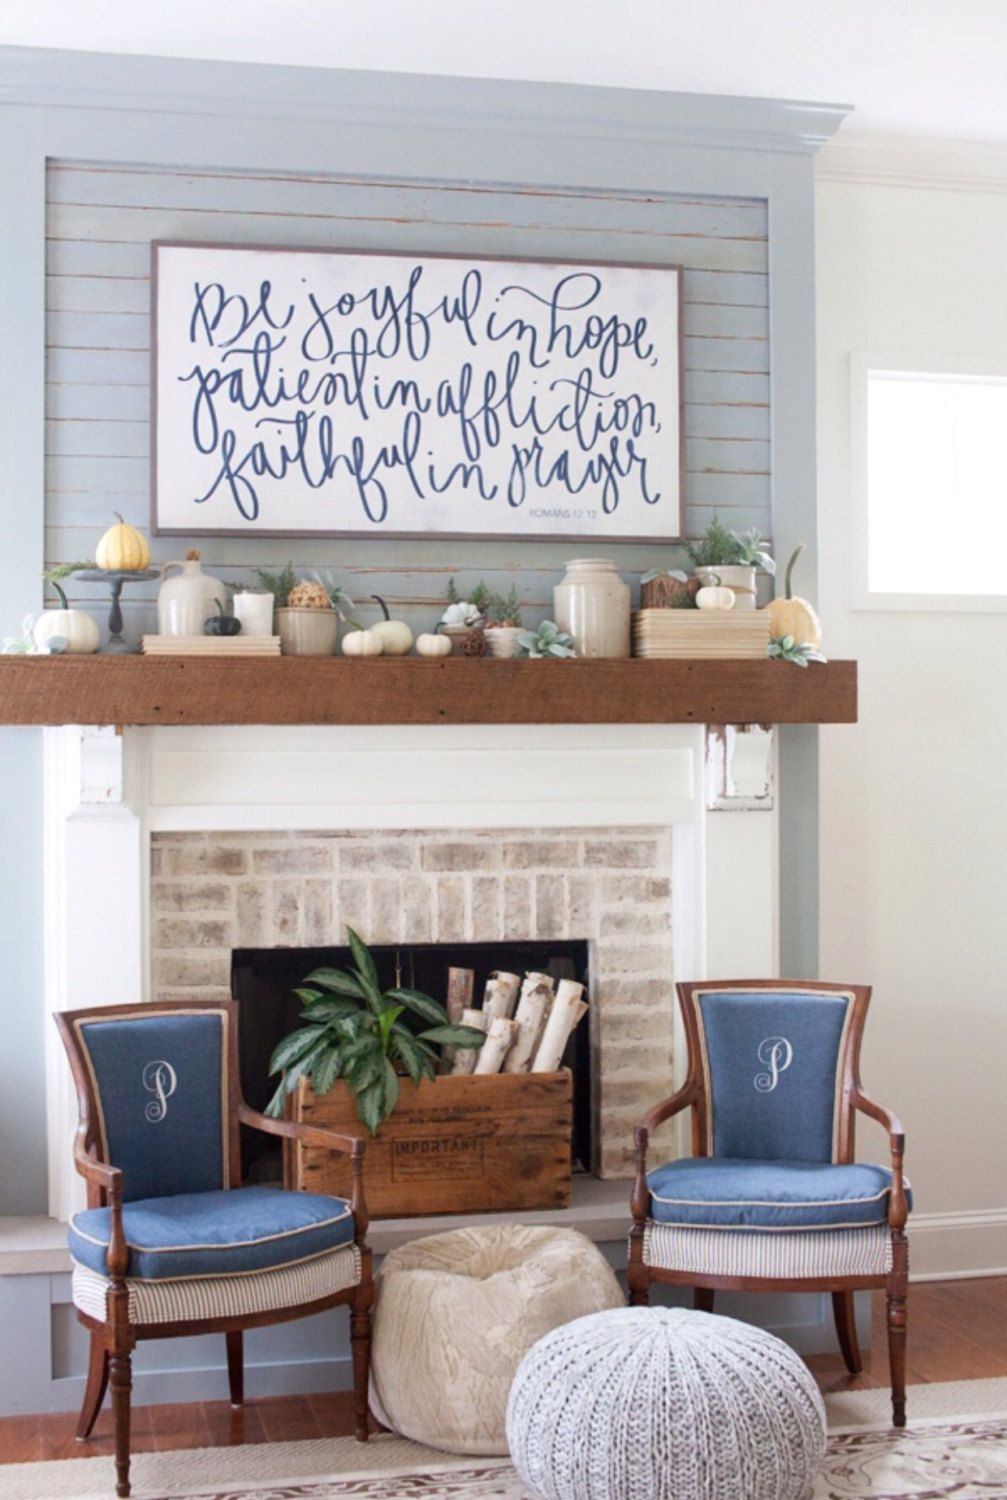 Romans 1212 aedriel by houseofbelongingllc on etsy free fonts stone instead of white brick darker mantle piece do it yourself large pretty sign focal point with neutrals and blue fall mantel inspiration home decor solutioingenieria Gallery